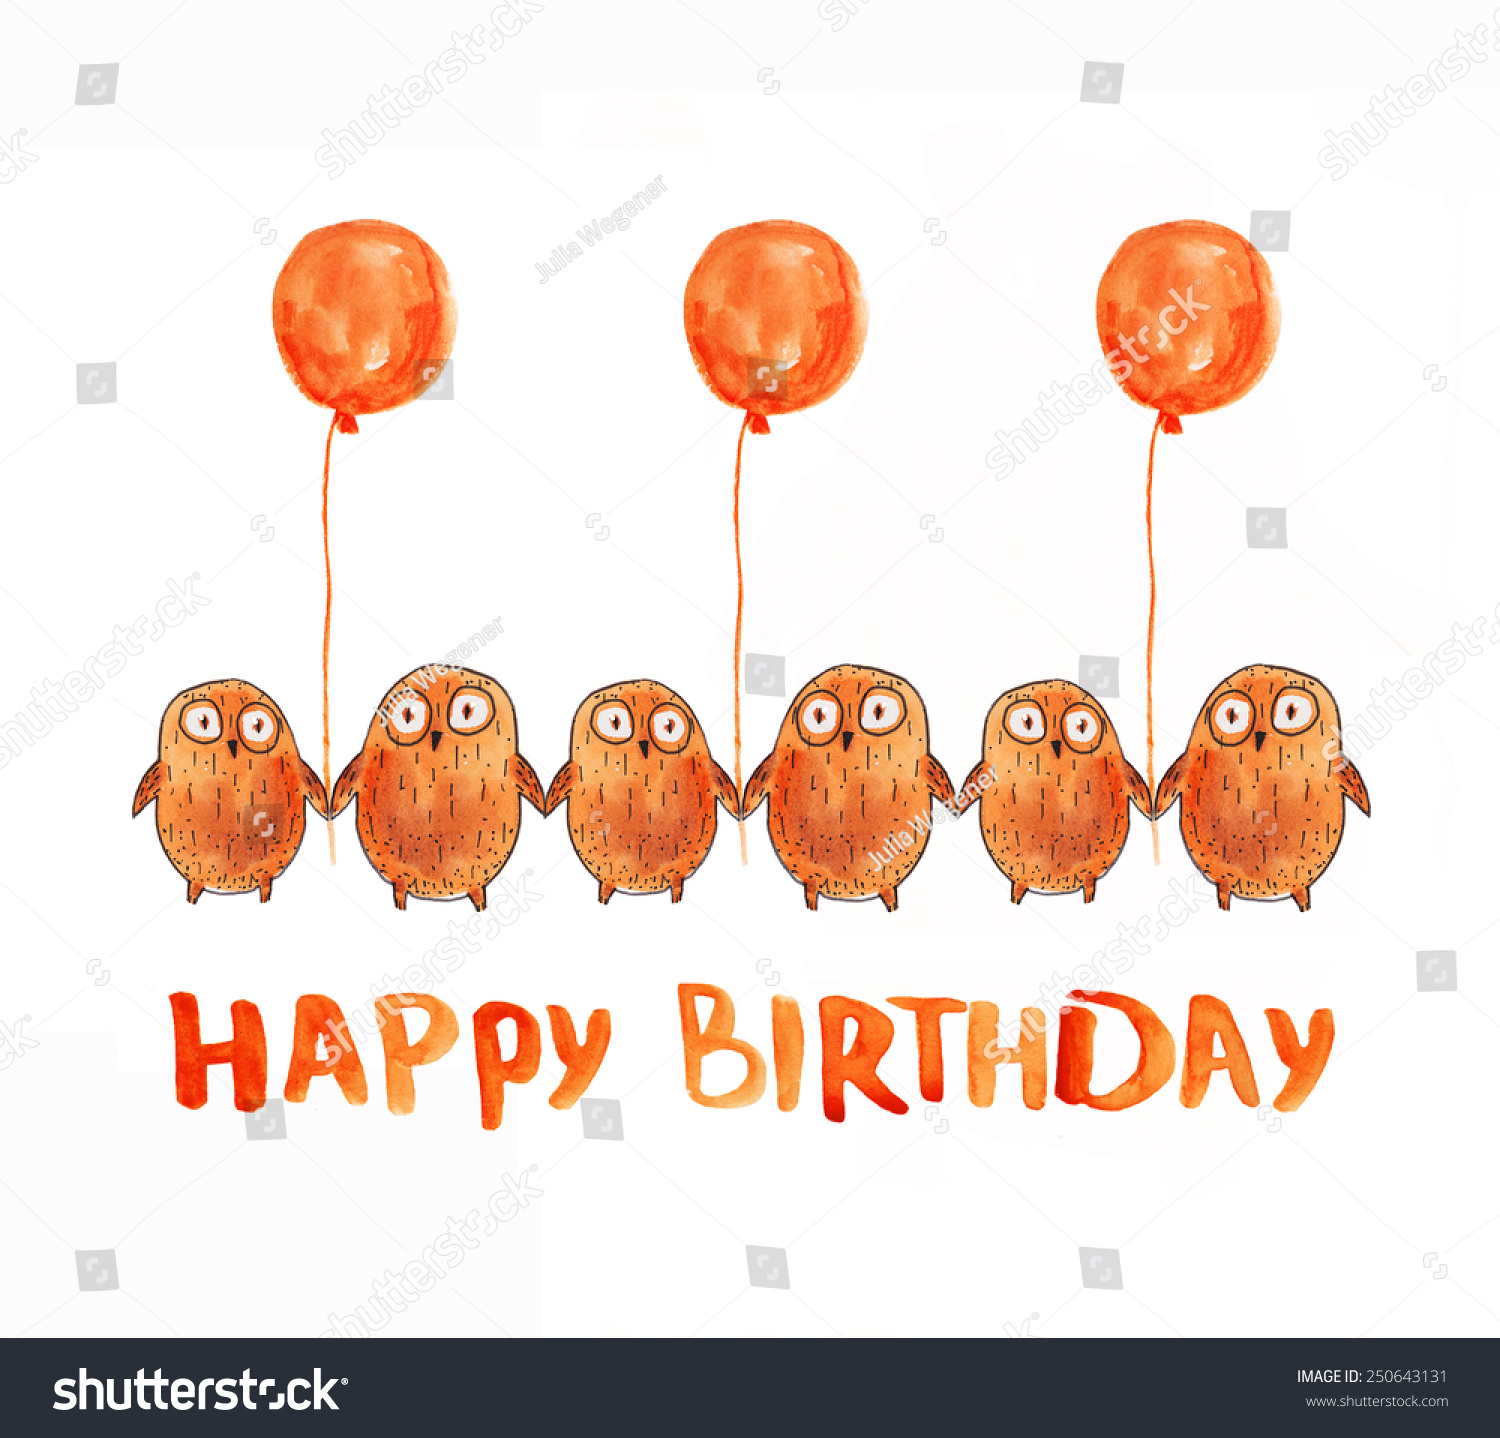 Owl balloons happy birthday greeting watercolor stock illustration owl with balloons happy birthday greeting watercolor illustration hand drawing kristyandbryce Image collections